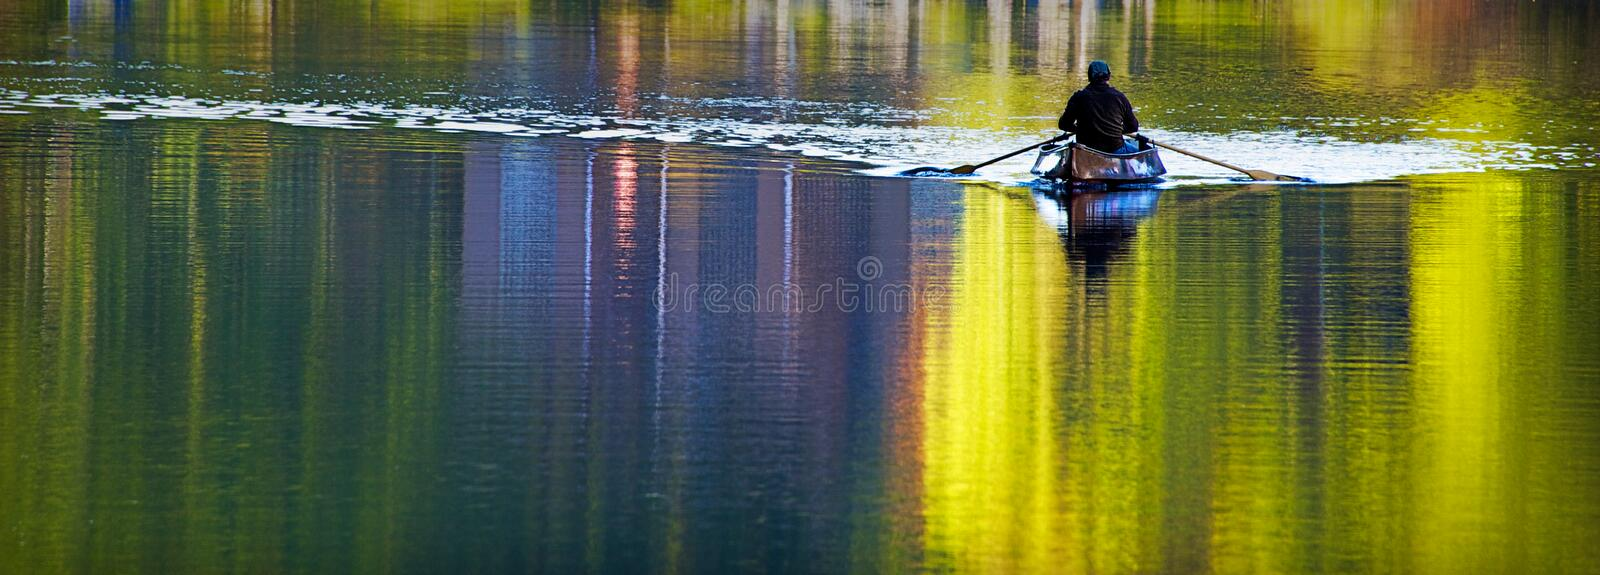 Canoing in Autumn royalty free stock image